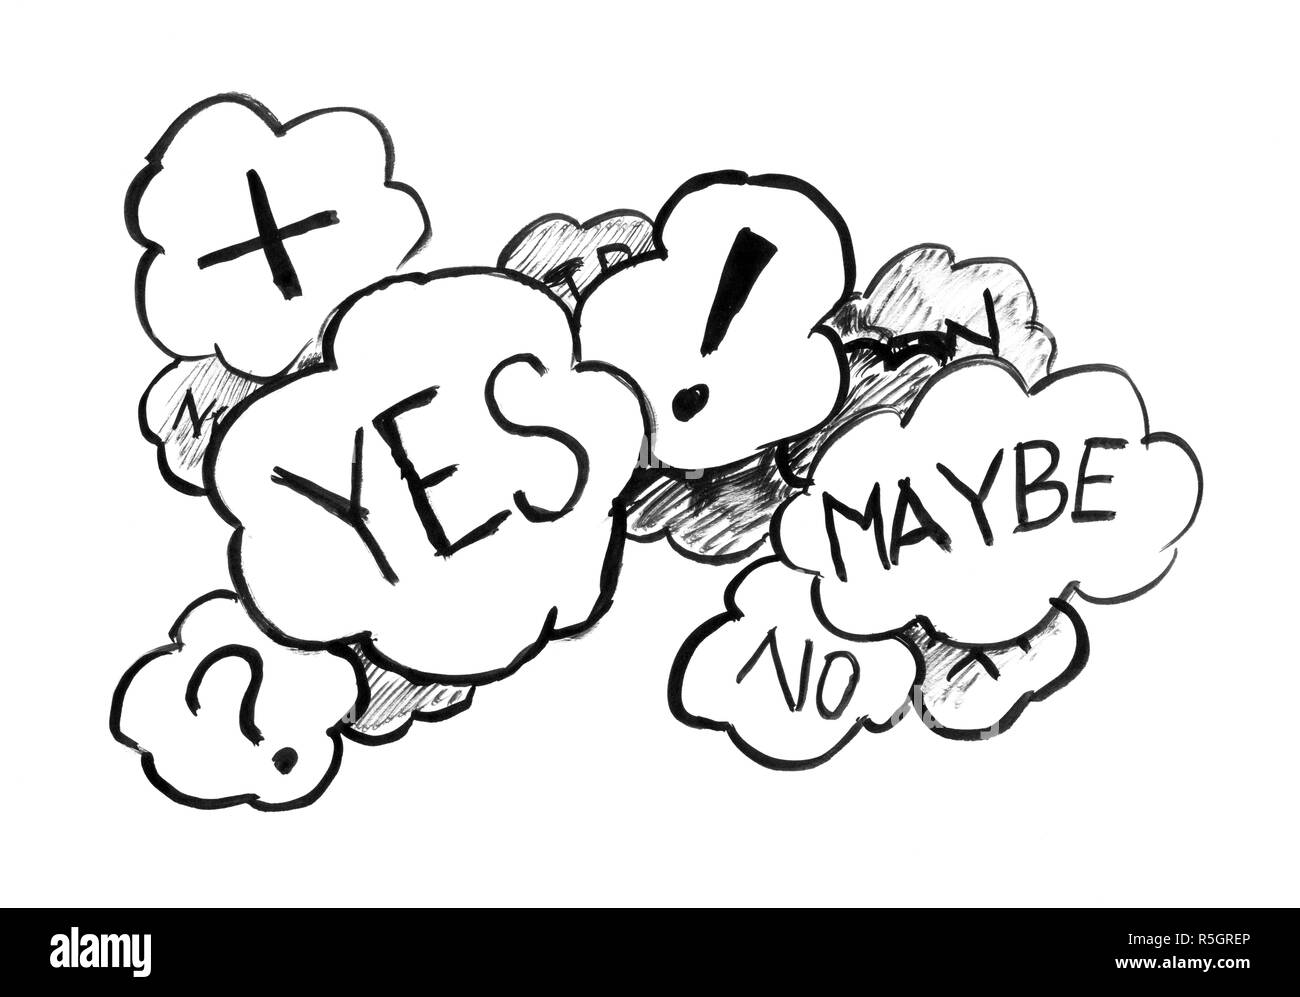 Black Ink Grunge Hand Drawing of Speech Bubbles of Uncertainty and Decision - Stock Image